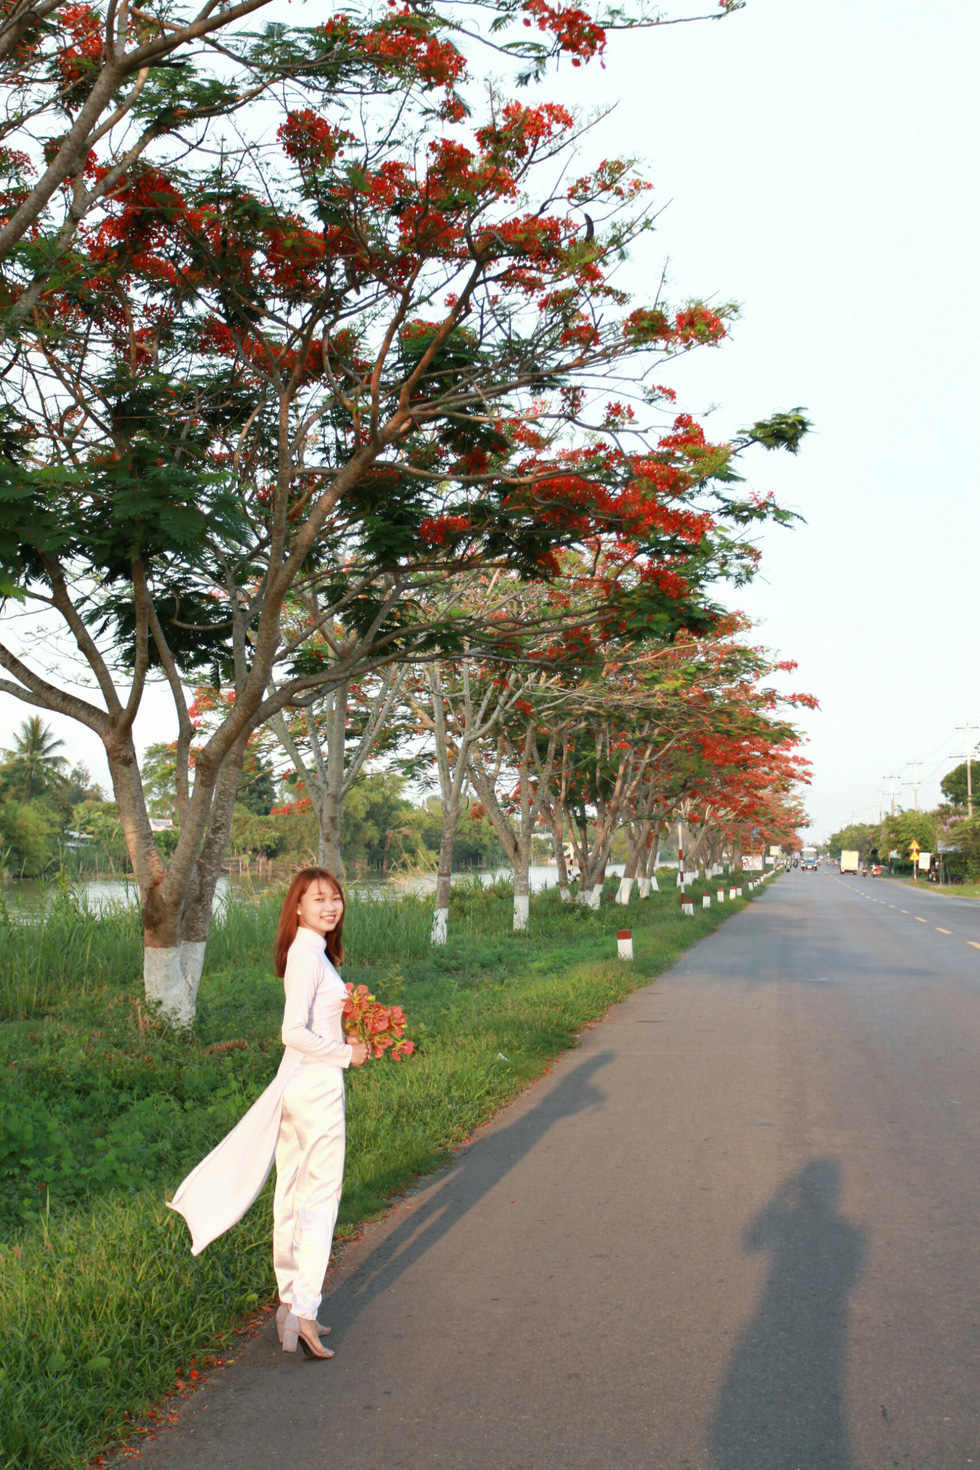 A young student in ao dai poses under red flamboyant flowers in Dong Thap Province, southern Vietnam. Photo: Tuoi Tre